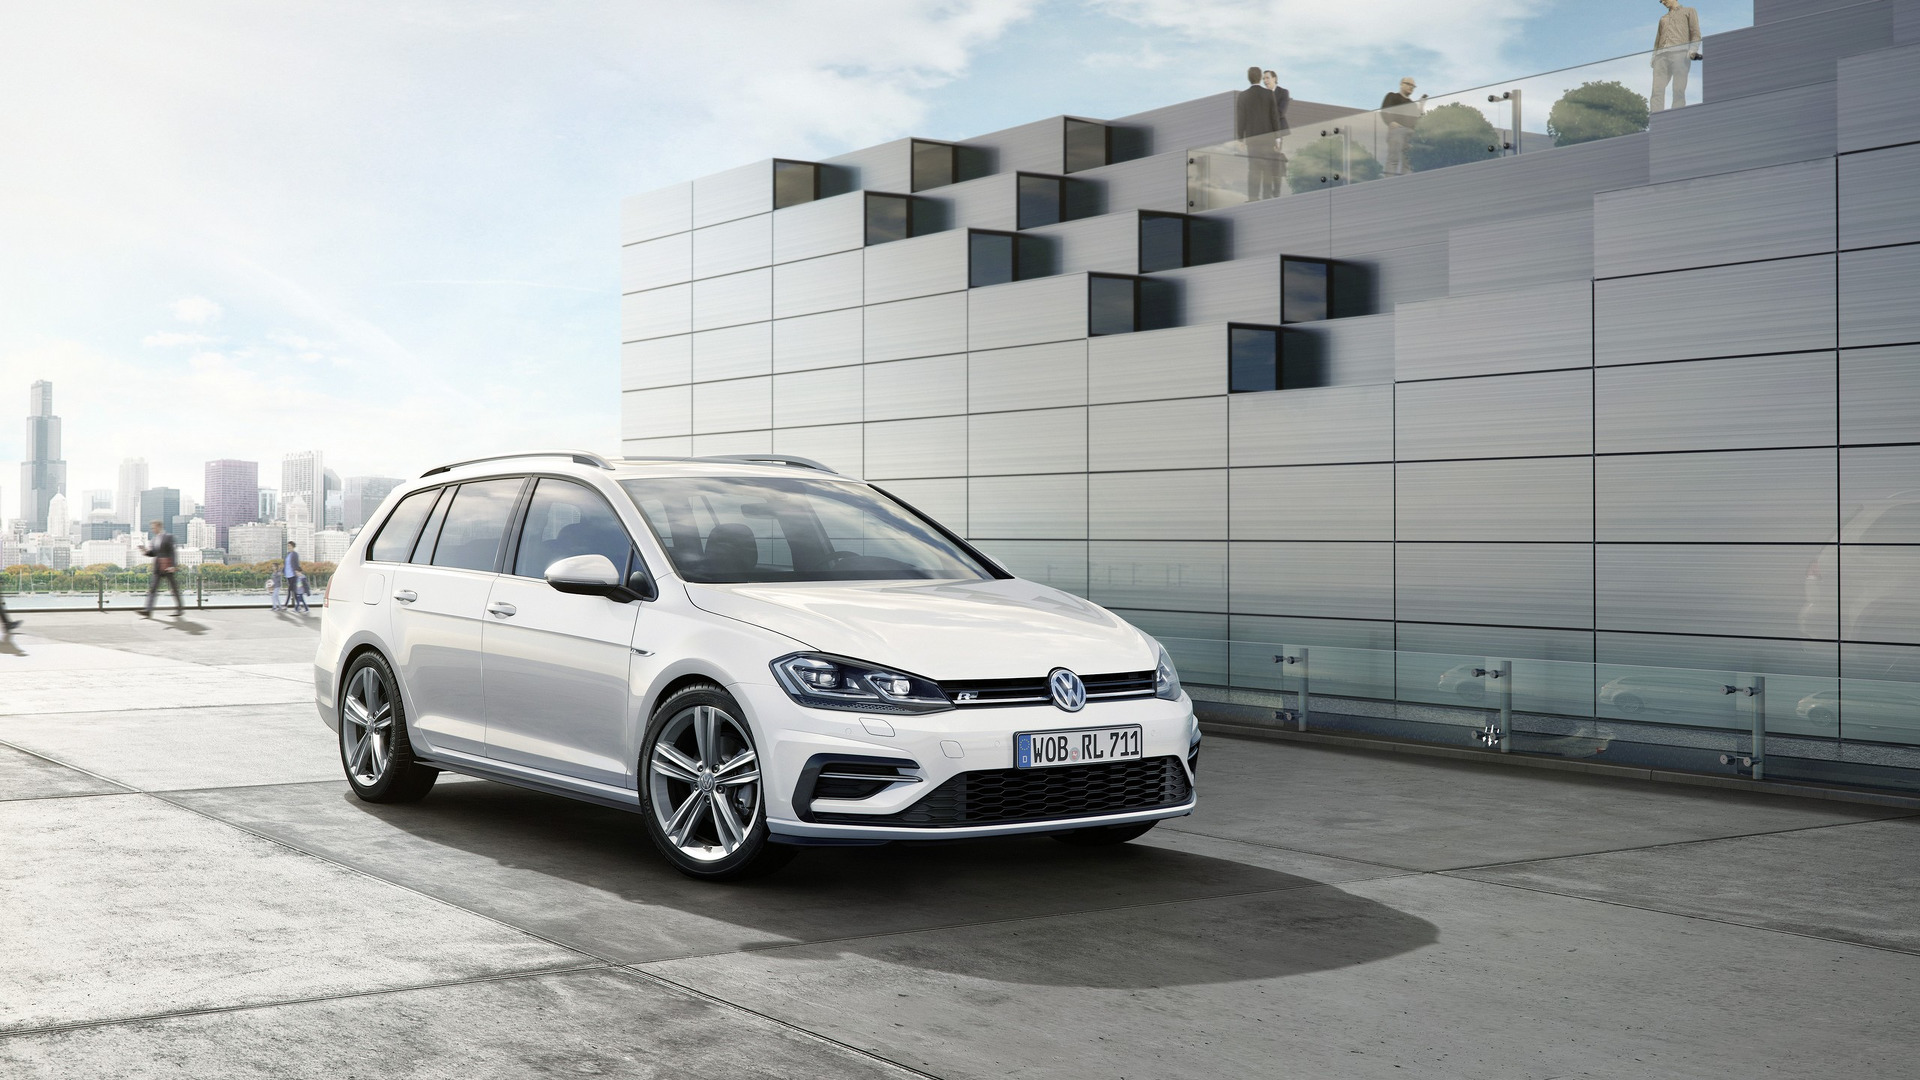 VW Golf Facelift Gets Sporty R Line Treatment